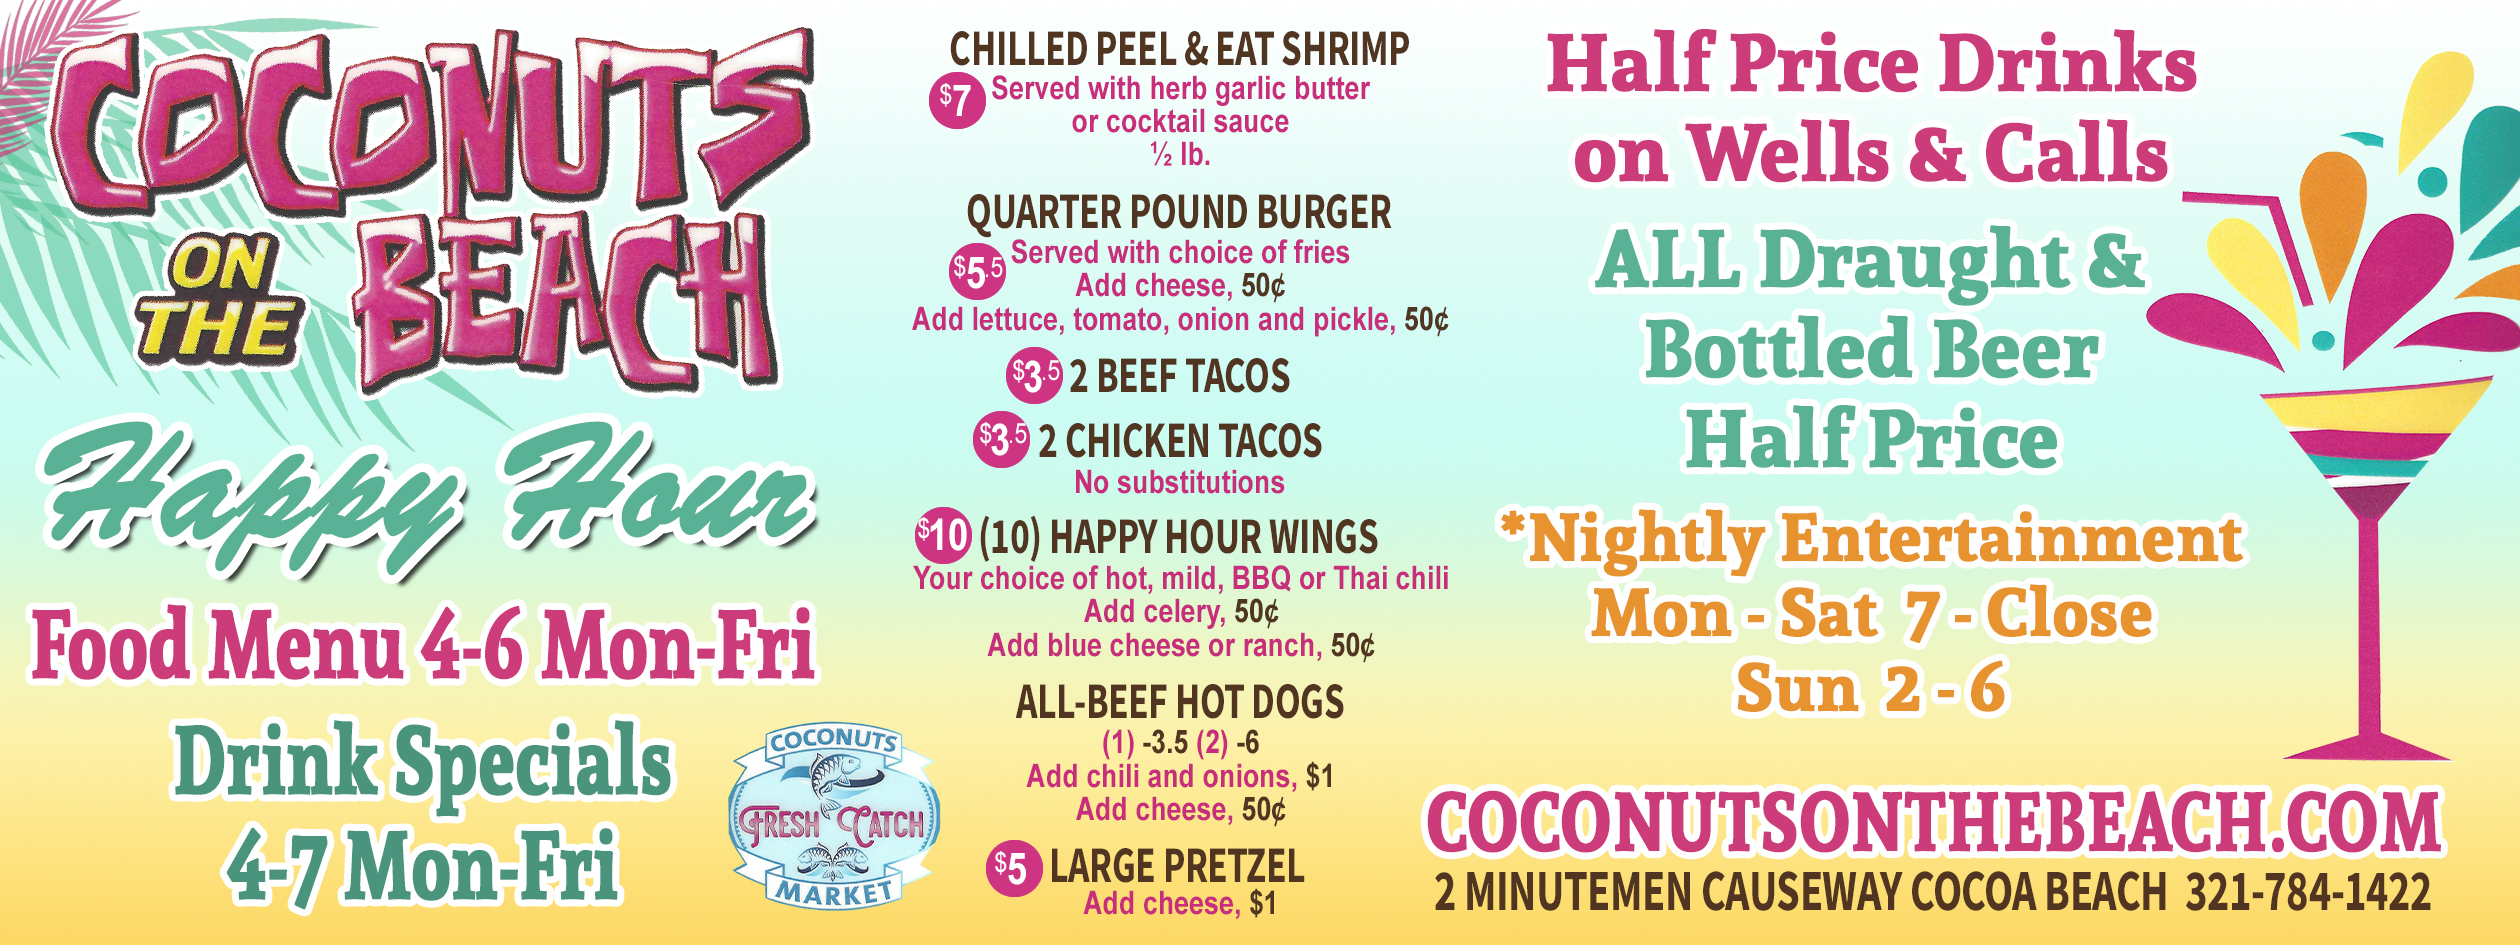 Cocoa beach coupons